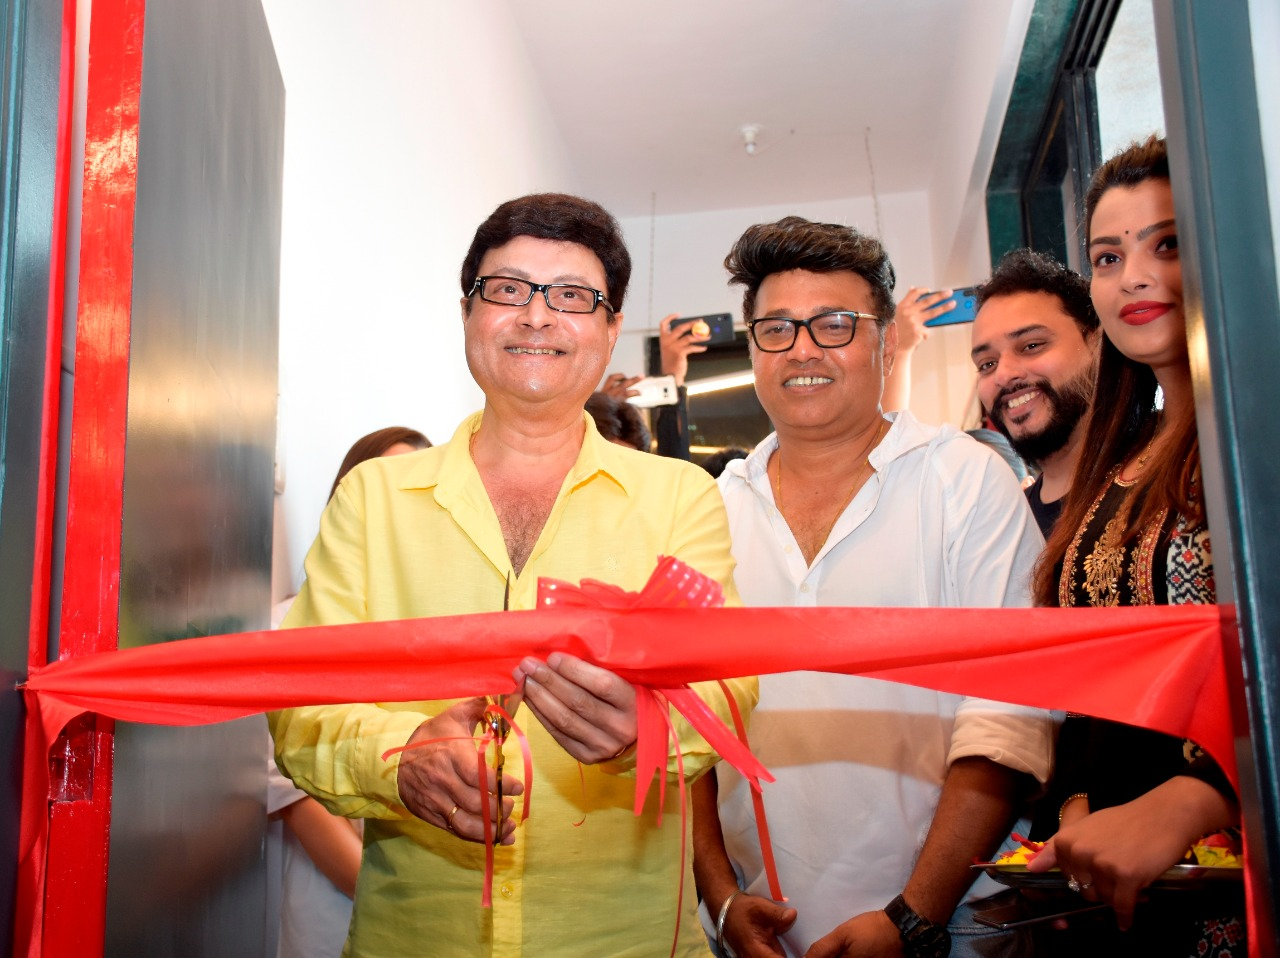 Star studded inauguration of ace director Sanjay Jadhav's Filmmaking school 'Filmagic' which will function from real sets and studio